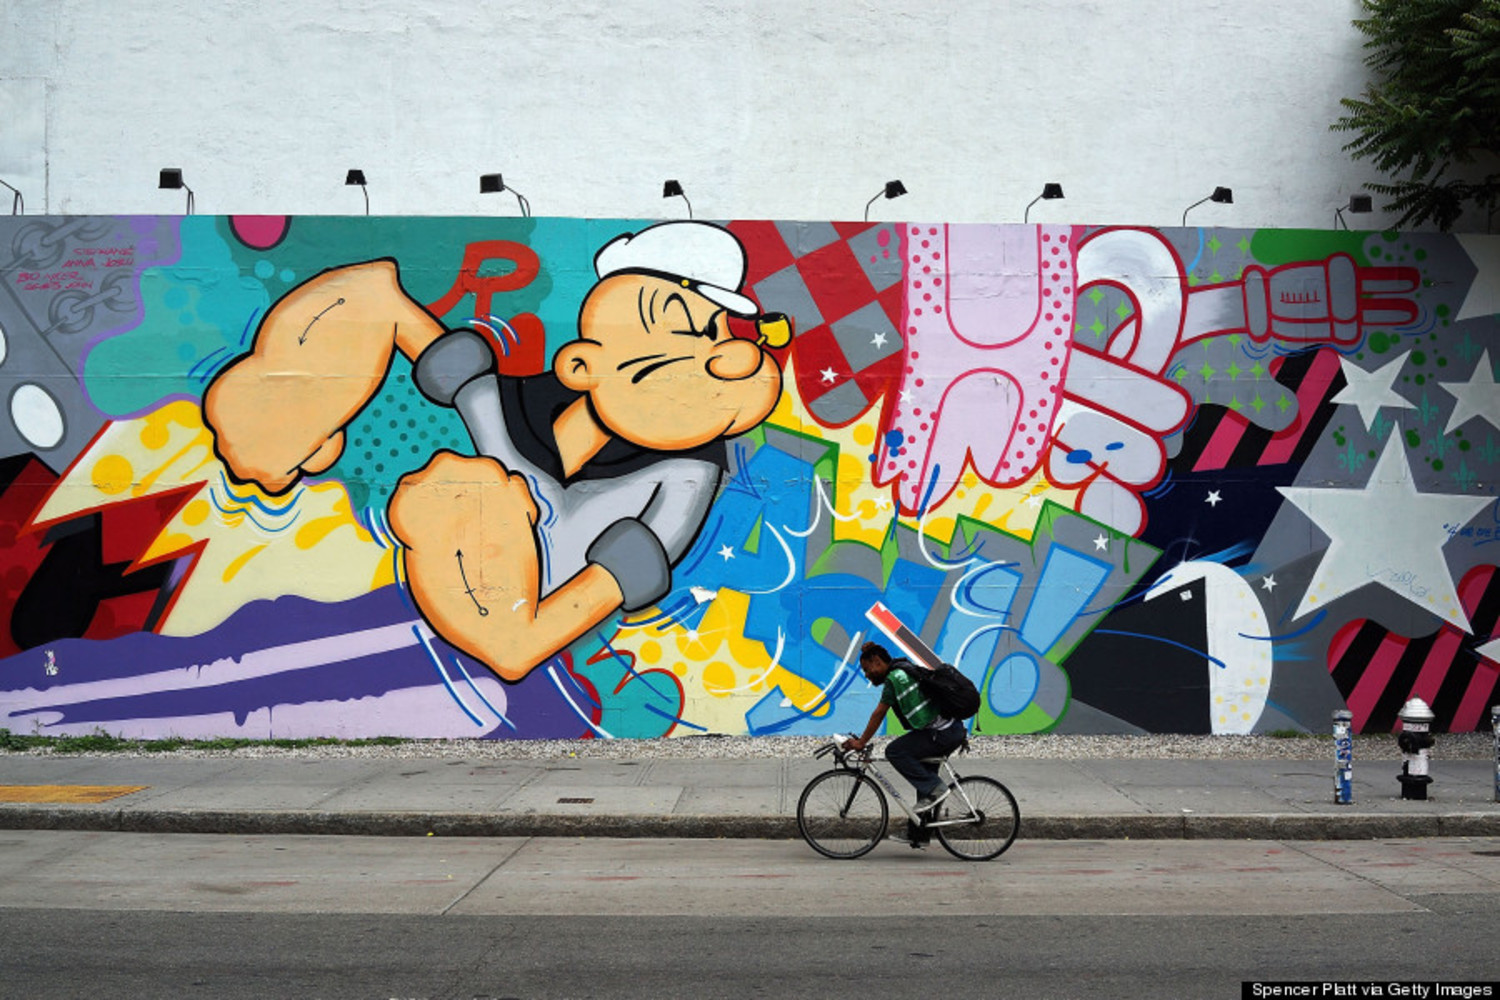 A work of street art on the famed Houston Street wall by artist John Matos on June 6, 2013 in New York City.